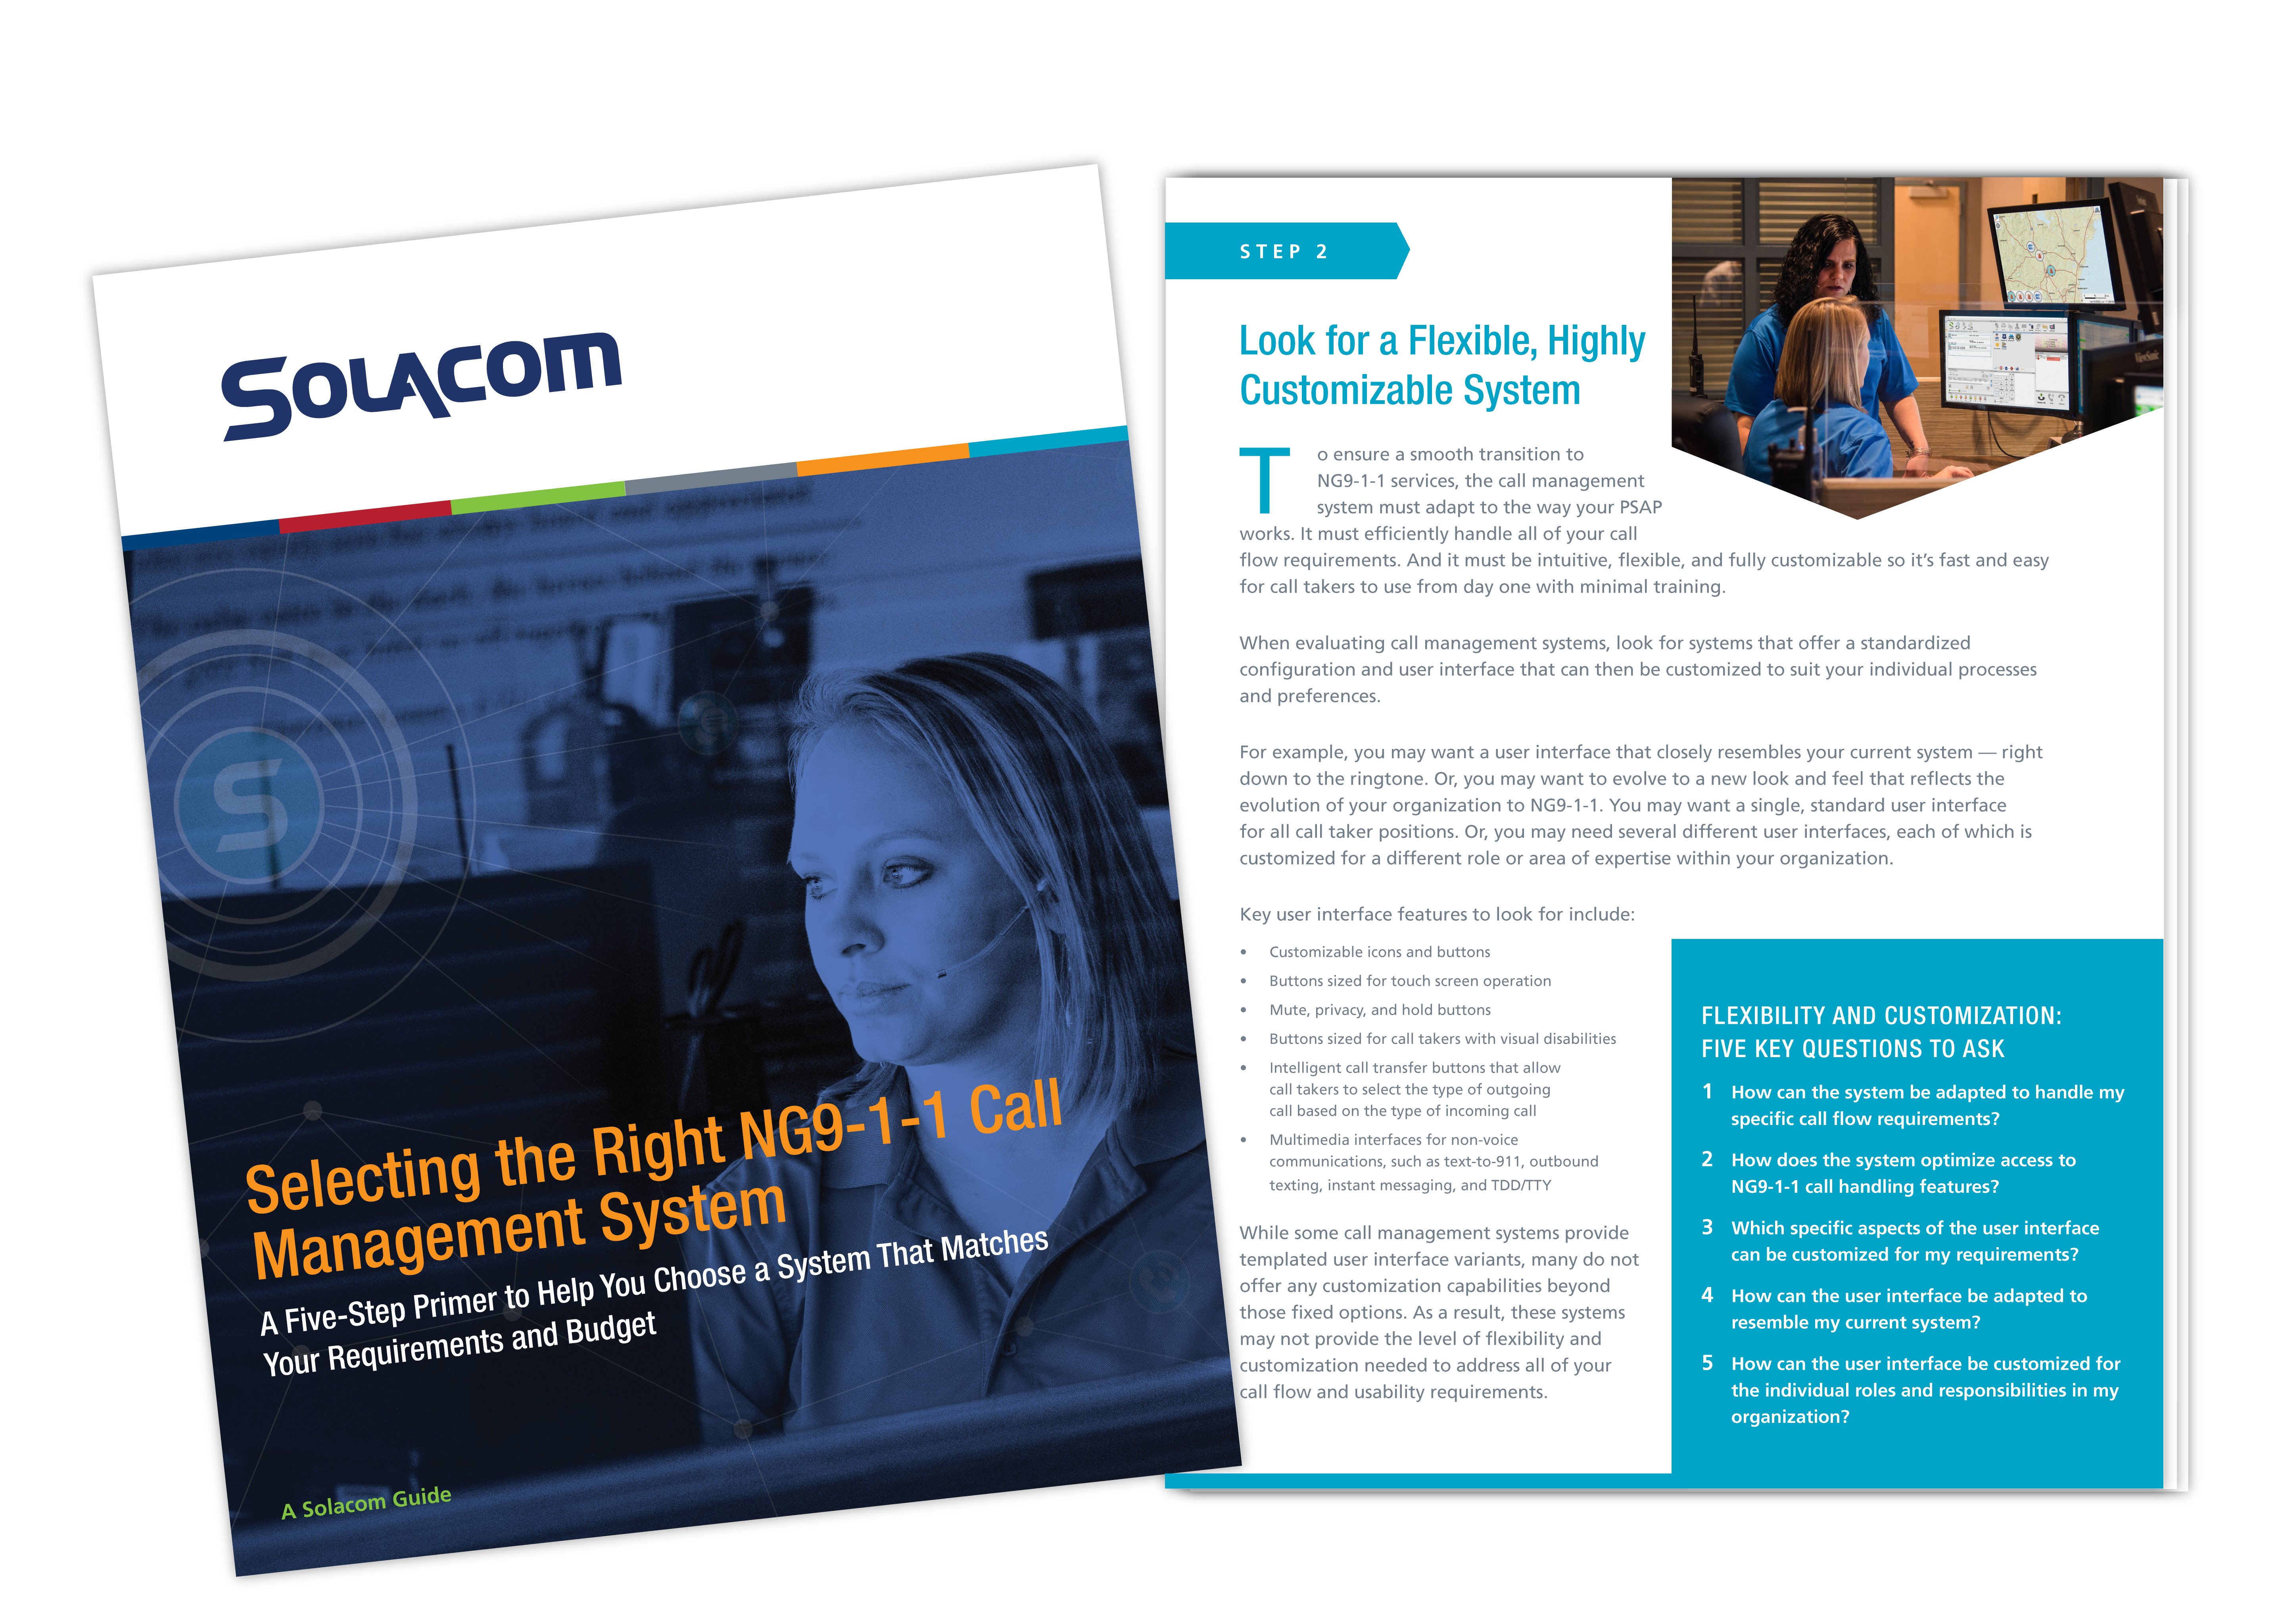 Selecting the Right NG9-1-1 Call Management System, a Solacom guide